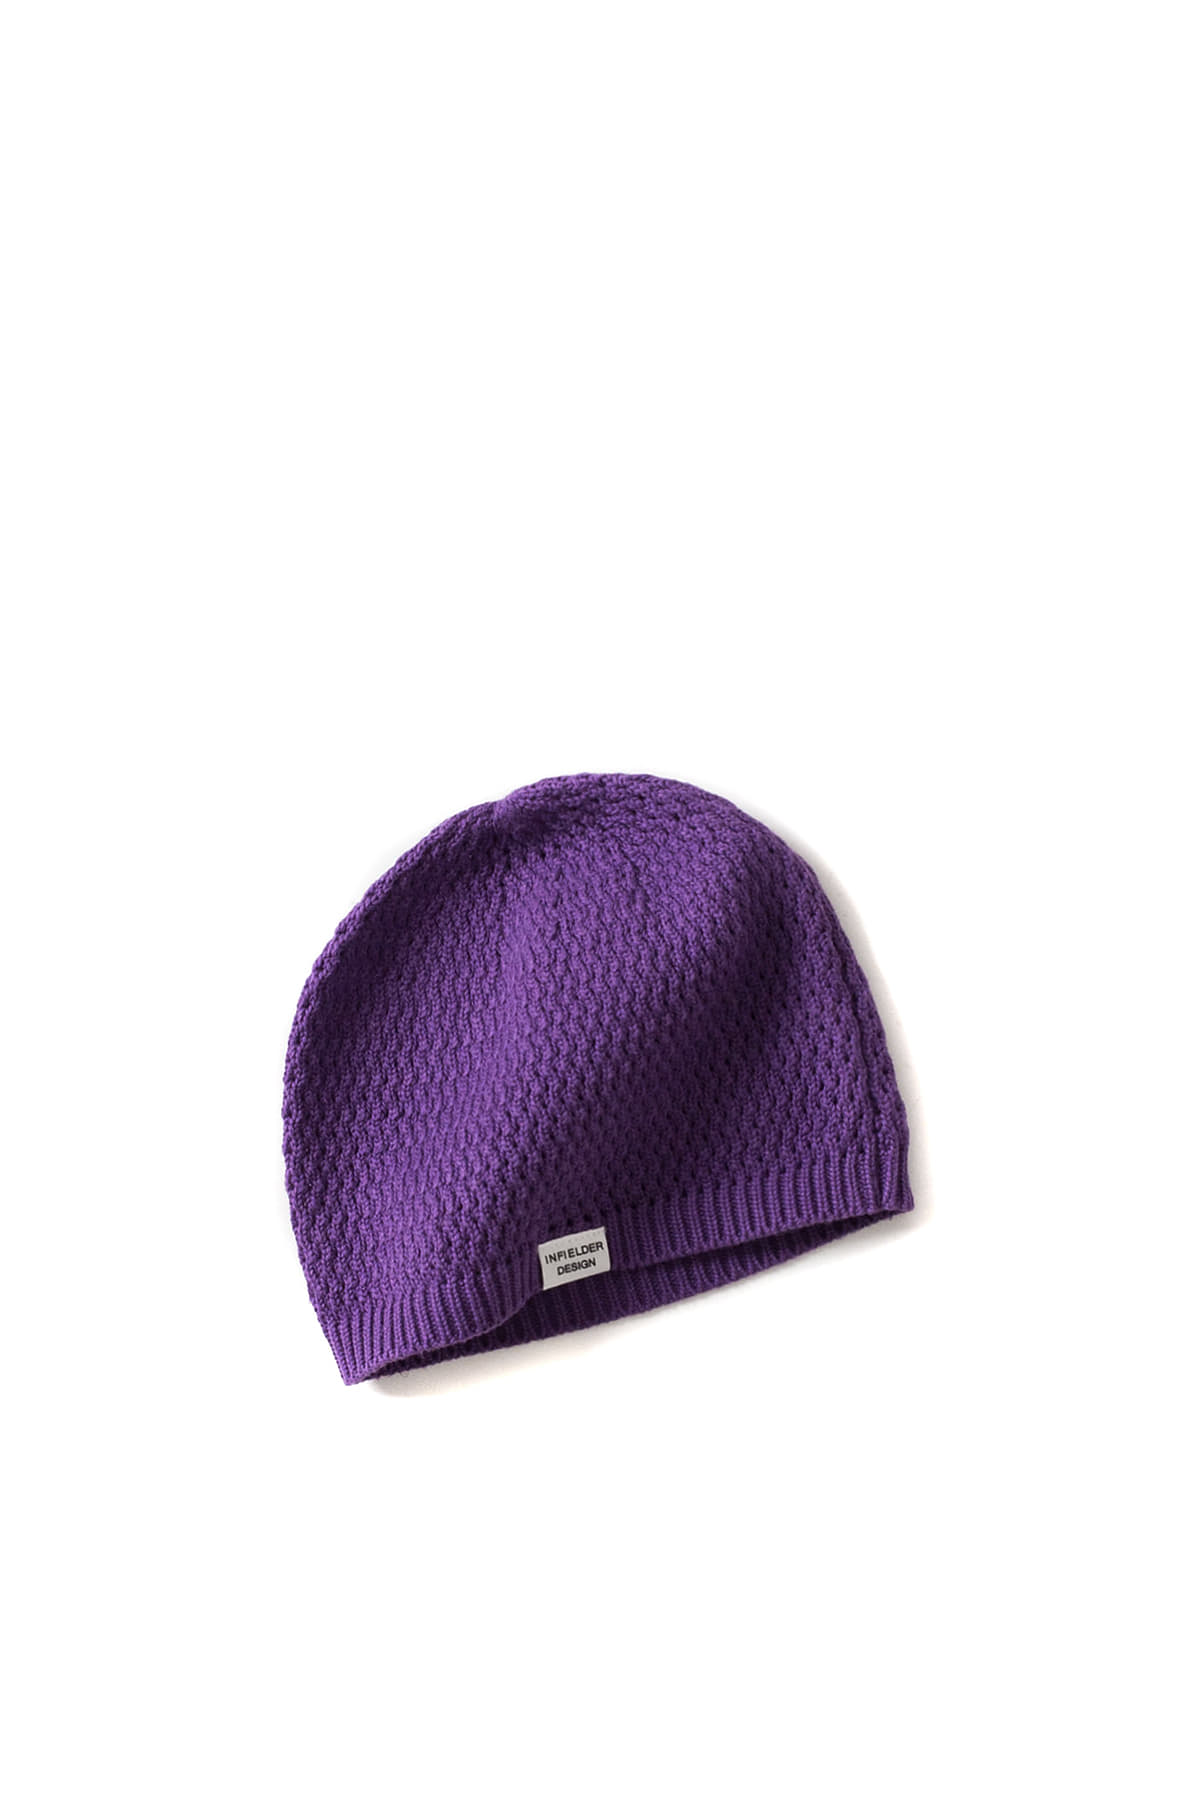 Infielder Design : Islam Cap (Purple)